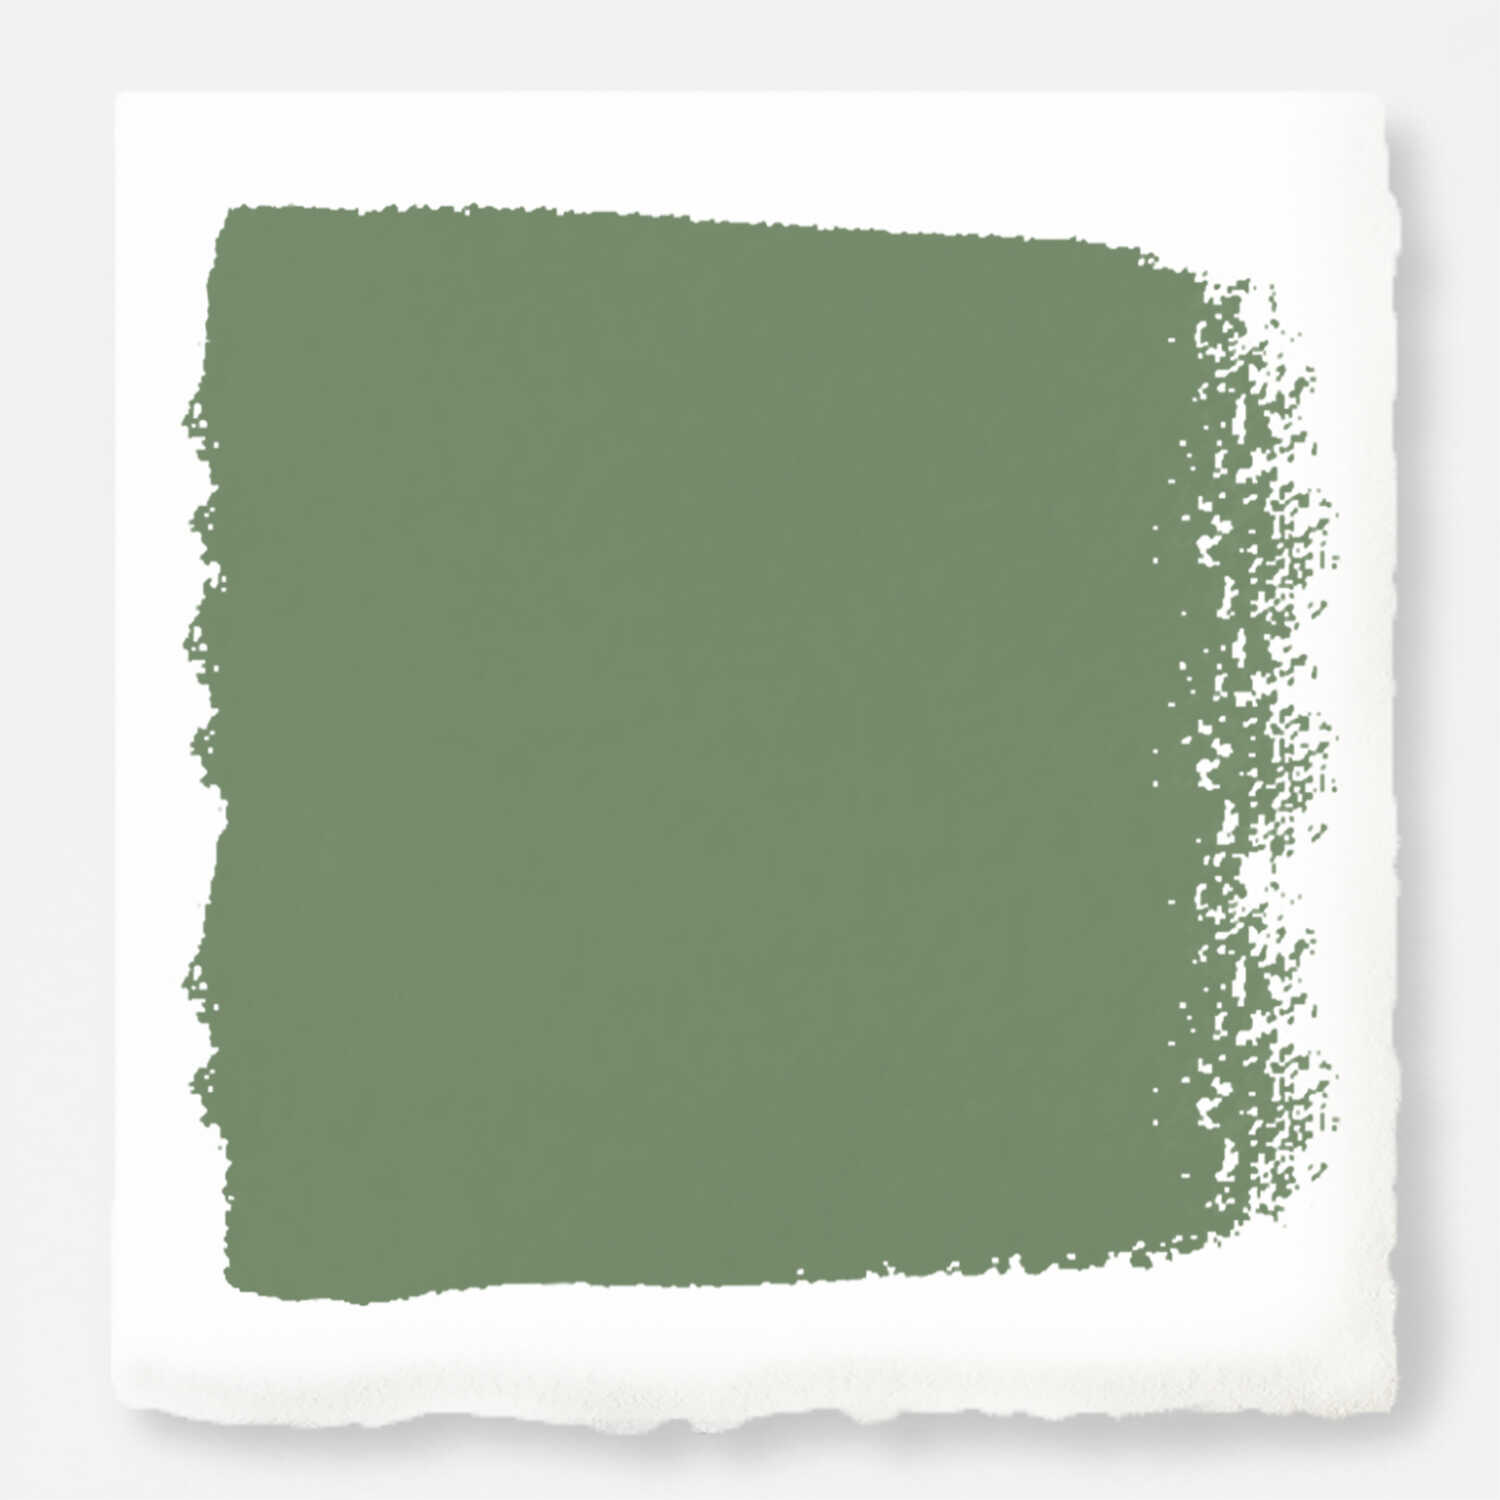 Magnolia Home  Flat  Magnolia Green  Exterior Paint and Primer  1 gal.